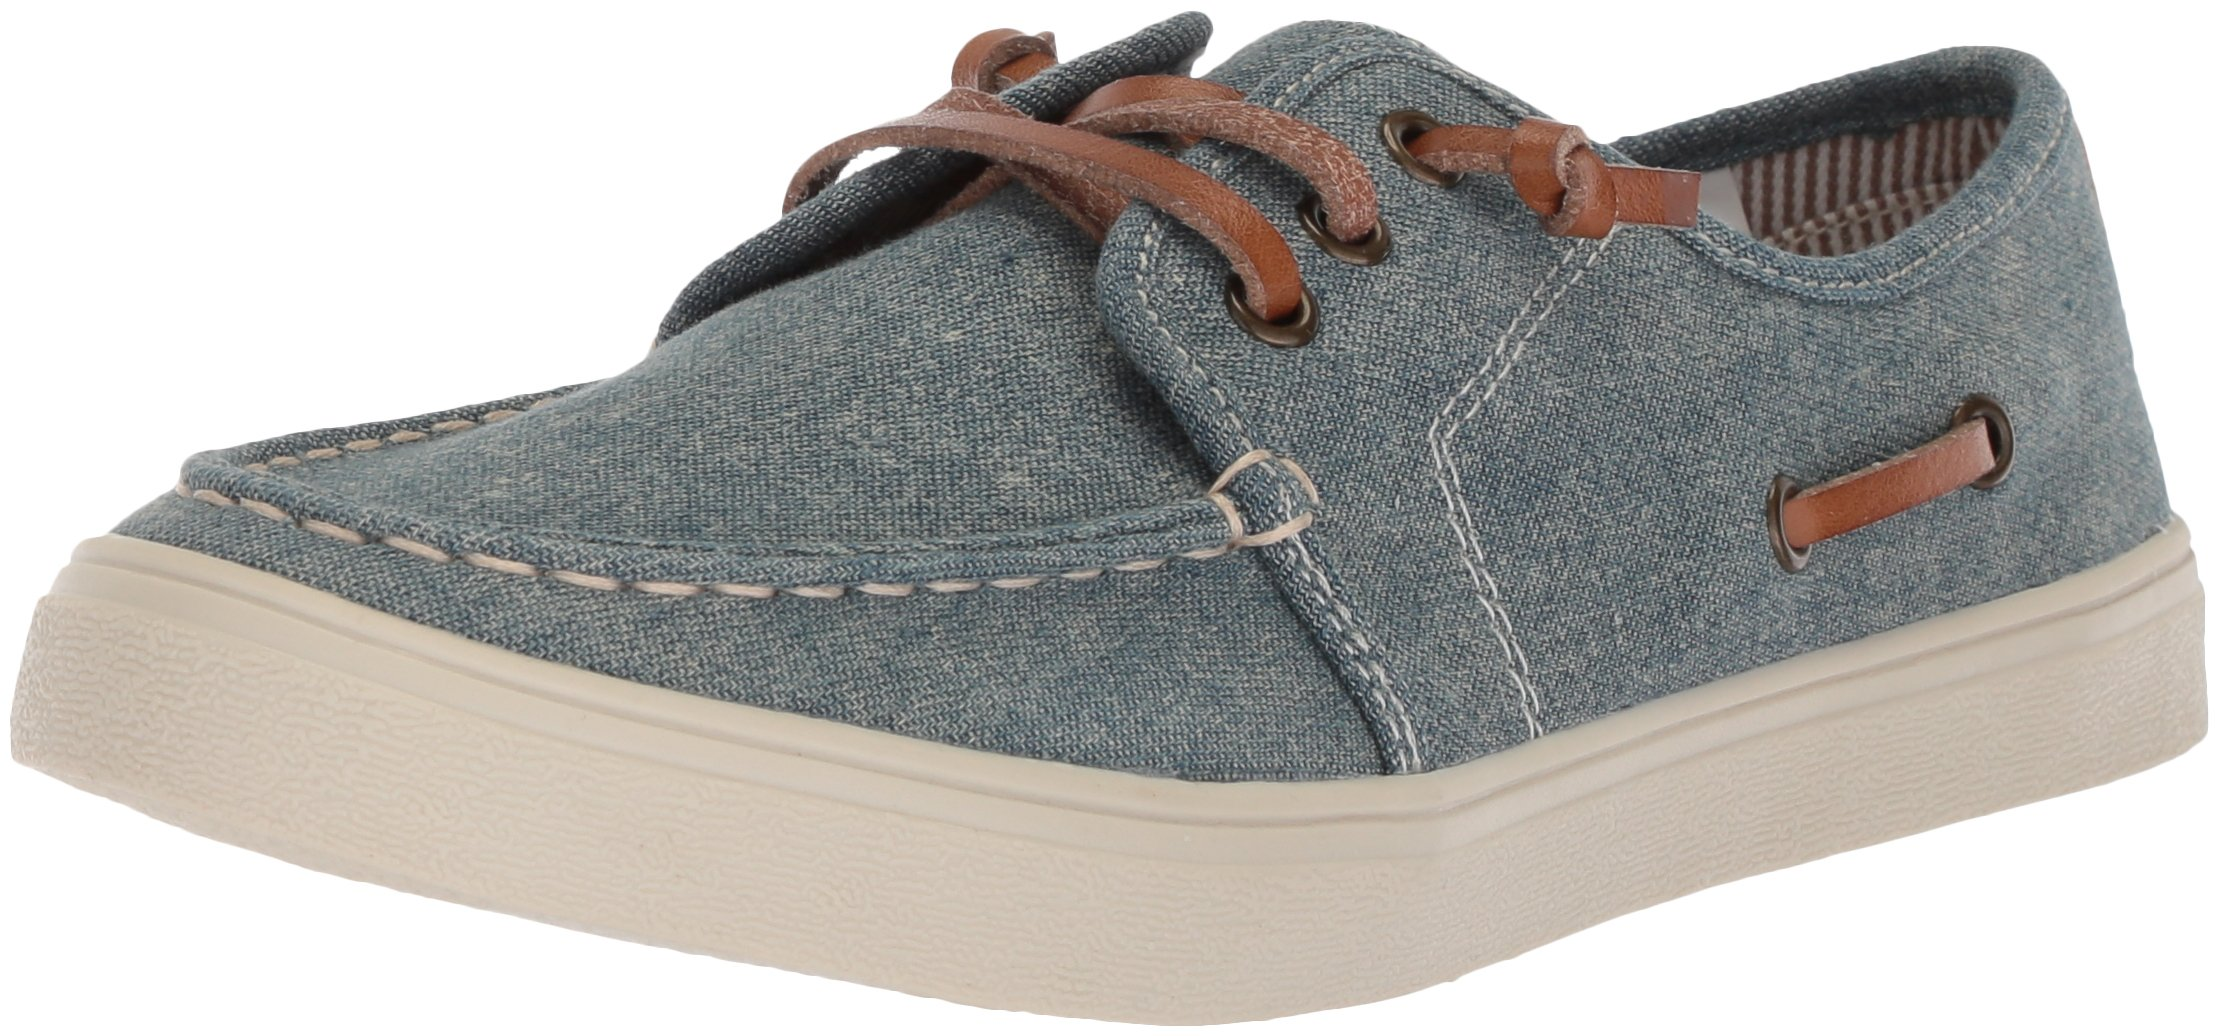 The Children's Place Boys' BB Laceup Street Slipper, Chambray, Youth 2 Medium US Big Kid